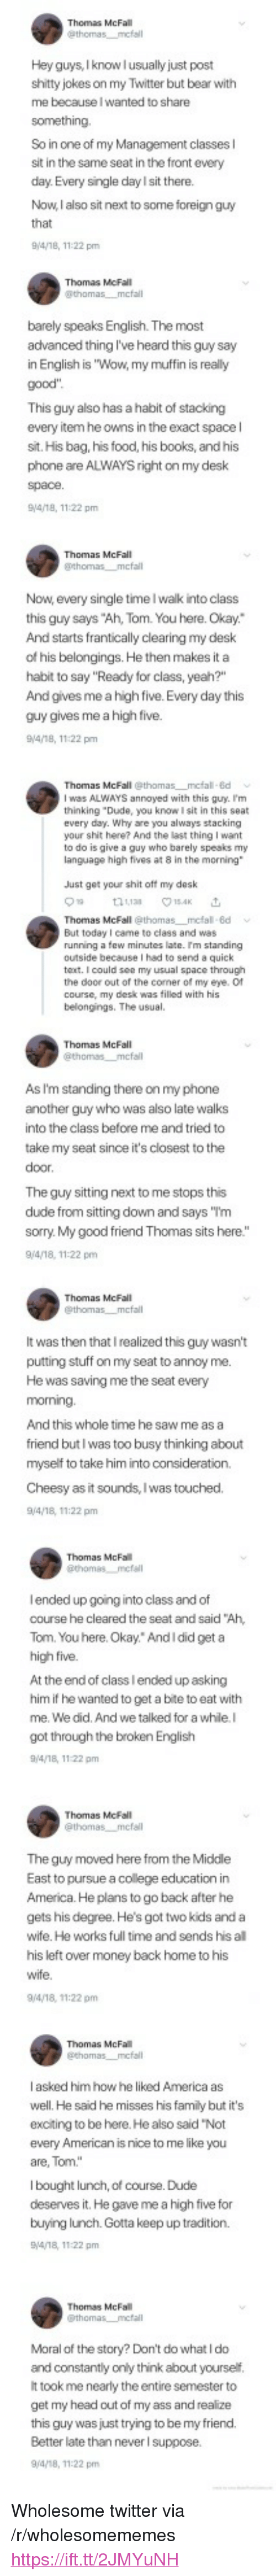 """America, Ass, and Books: Hey guys, Iknow l usually just post  shitty jokes on my Twitter but bear with  me because I wanted to share  So in one of my Management classes l  sit in the same seat in the front every  day.Every single day l sit there.  Now, I also sit next to some foreign guy  Thomas McFall  barely speaks English. The most  advanced thing I've heard this guy say  in English is """"Wow, my muffin is really  This guy also has a habit of stacking  every item he owns in the exact space l  sit. His bag, his food, his books, and his  phone are ALWAYS right on my desk  9/4/18, 1122 pm  Thomas McFall  Now, every single time I walk into class  this guy says """"Ah, Tom. You here. Okay.""""  And starts frantically clearing my desk  of his belongings. He then makes it a  habit to say """"Ready for class, yeah?""""  And gives me a high five. Every day this  guy gives me a high five.  Thomas McFall @thomas mcfal 8d  I was ALWAYS annoyed with this guy. I'm  thinking """"Dude, you know I sit in this seat  every day. Why are you always stacking  your shit here? And the last thing I want  to do is give a guy who barely speaks my  language high fives at 8 in the morning  Just get your shit oft my desk  Thomas McFall @thomas mcfal 8d  But today I came to class and was  running a few minutes late. Im standing  outside because I had to send a quick  text. I could see my usual space through  the door out of the comer of my eye. O  course, my desk was filled with his  belongings. The usual.  Thomas McFall  As I'm standing there on my phone  another guy who was also late walks  into the class before me and tried to  take my seat since it's closest to the  The guy sitting next to me stops this  dude from sitting don and says """"Tm  sorry. My good friend Thomas sits here.""""  9/4/18, 11:22 pm  It was then that I realized this guy wasn't  putting stuff on my seat to annoy me  He was saving me the seat every  And this whole time he saw me as a  friend butl was too busy thinking about  myself to take him"""